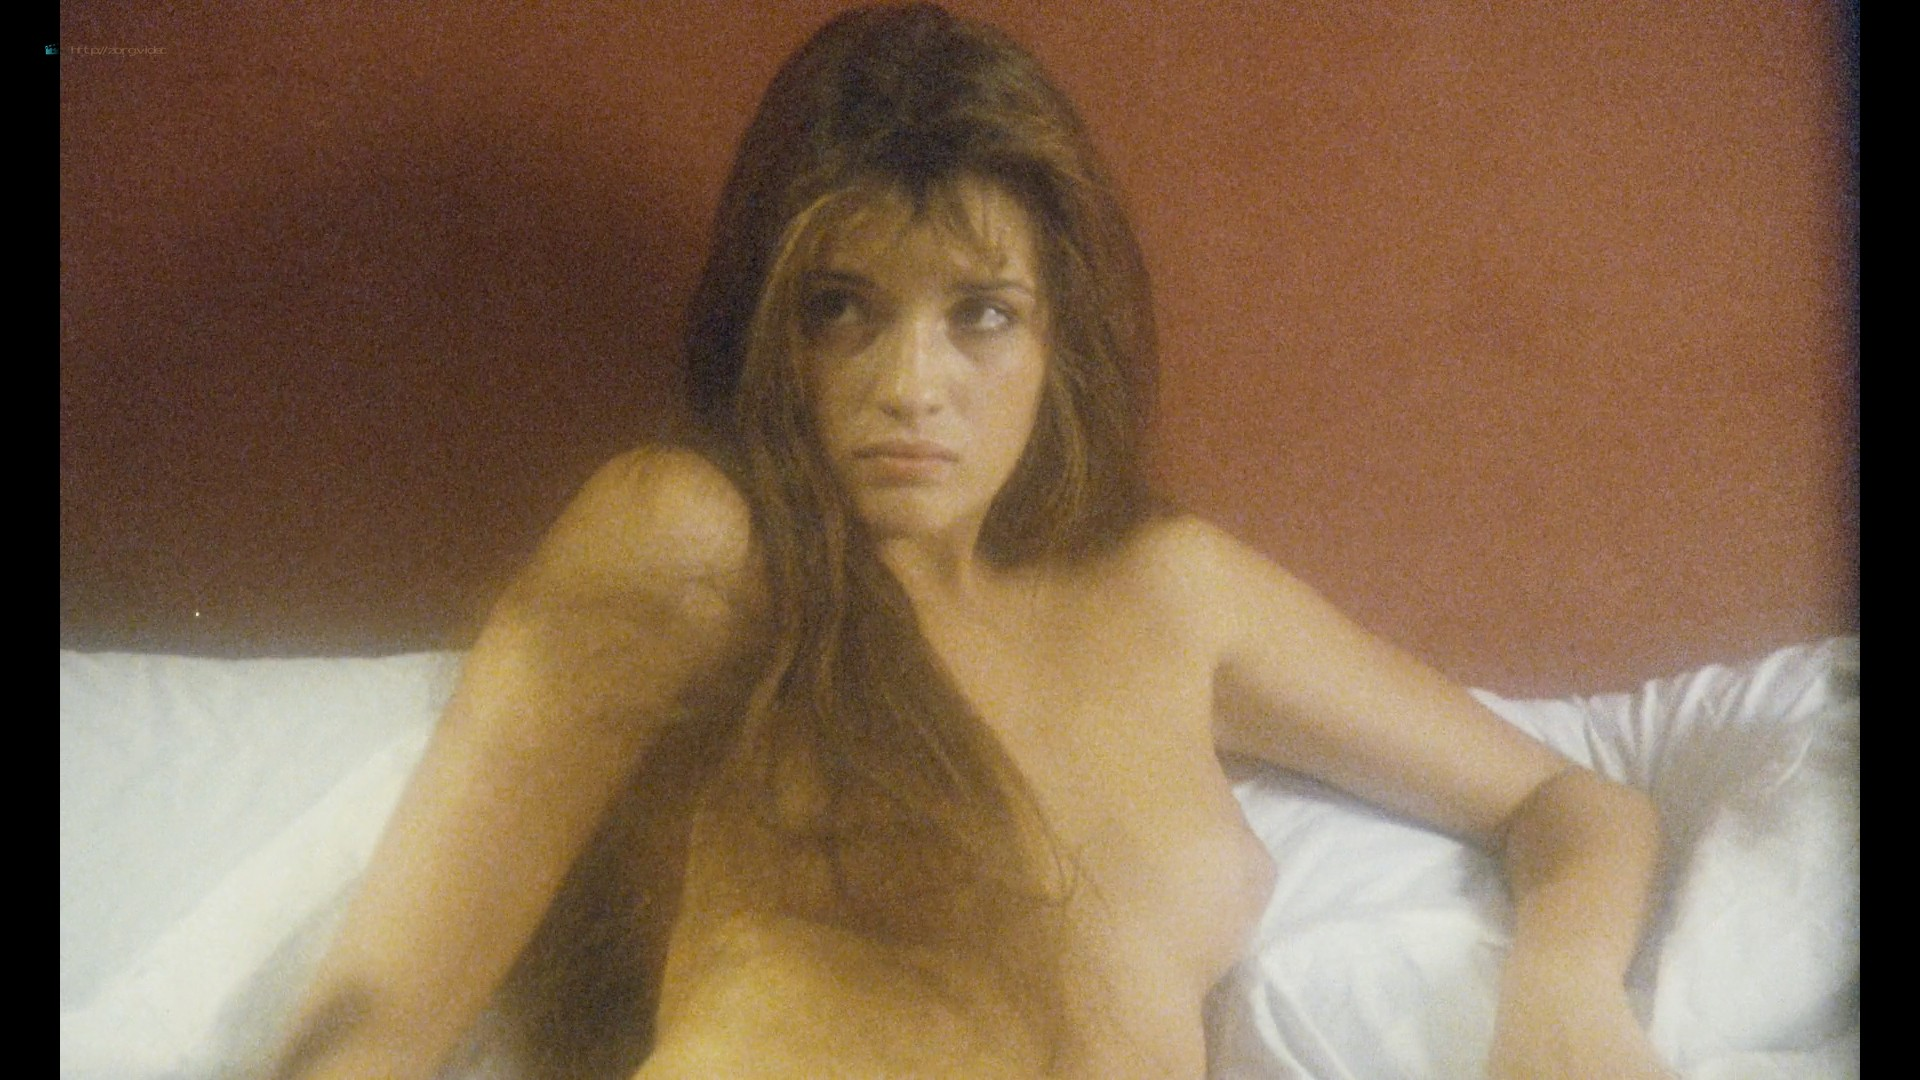 Josephine Jacqueline Jones nude full frontal Florence Guérin and others nude sex too - Black Venus (1983) HD 1080p Web (8)